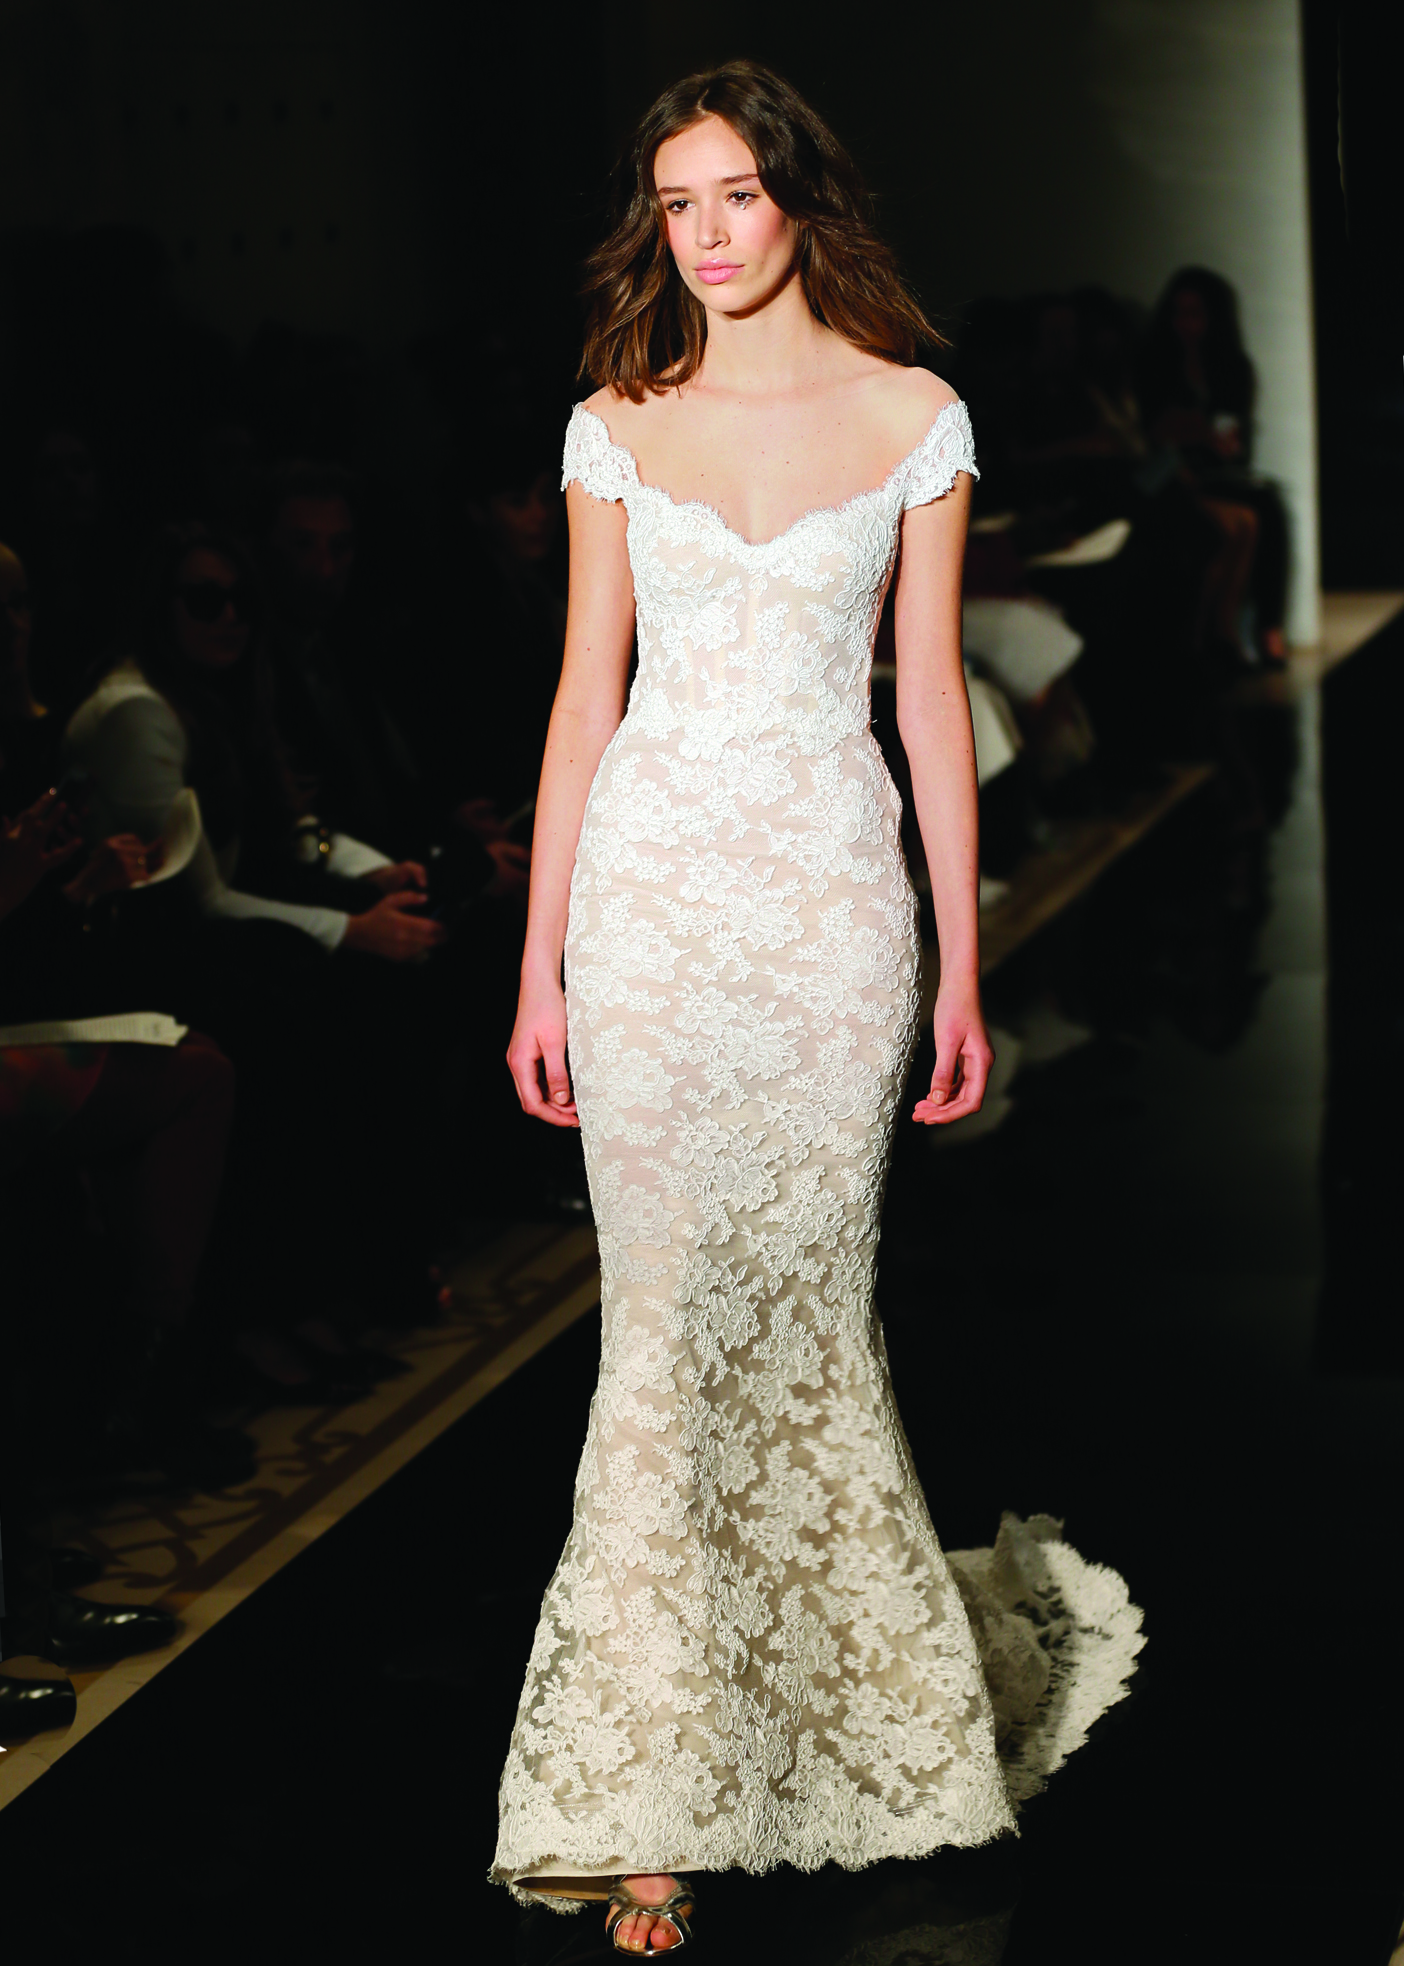 ab297403c20 Mermaid Dress Bridal Wedding Gown by Reem Acra in NY